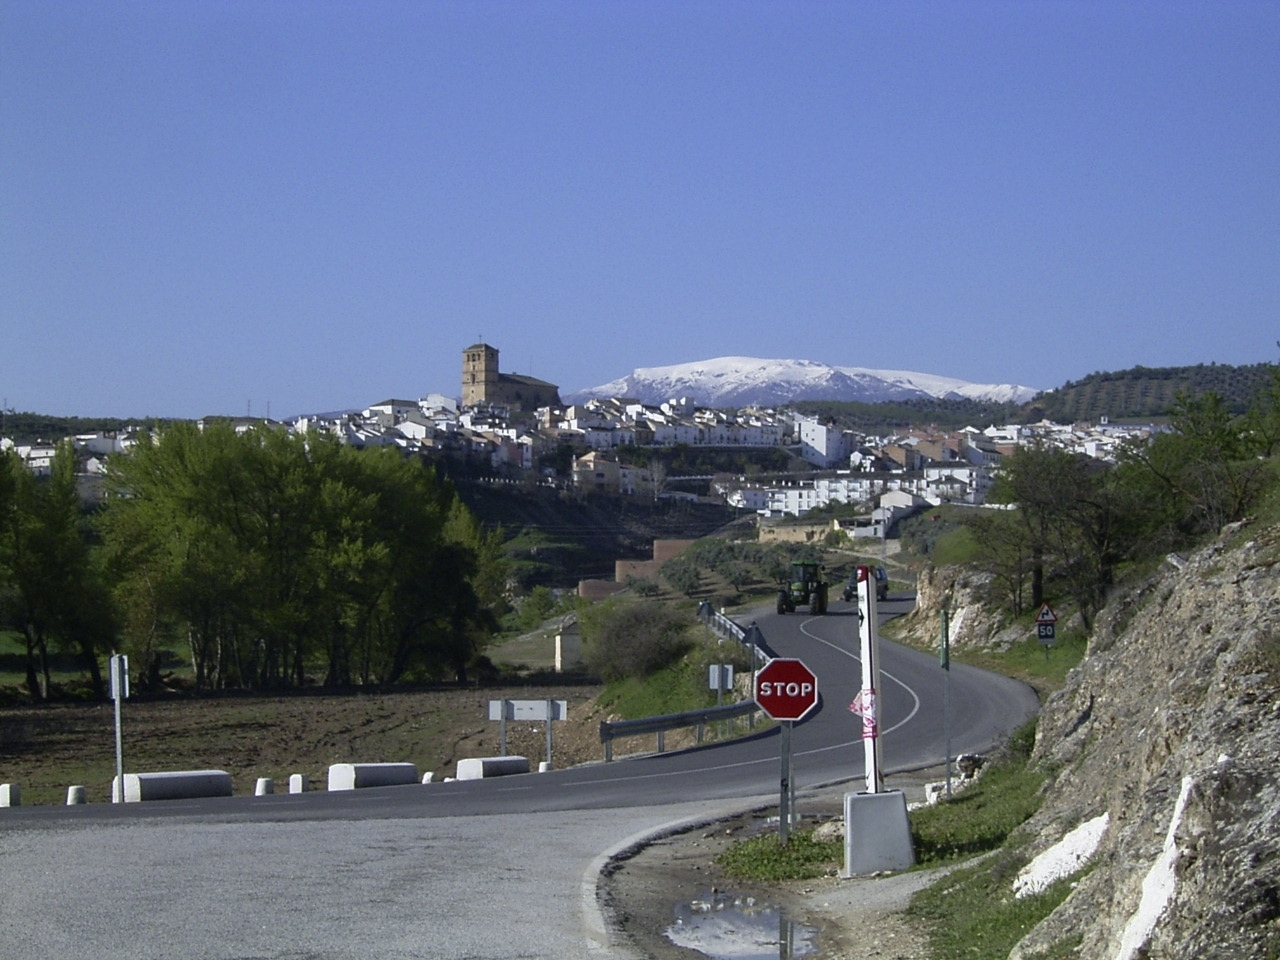 Property for sale in Alhama